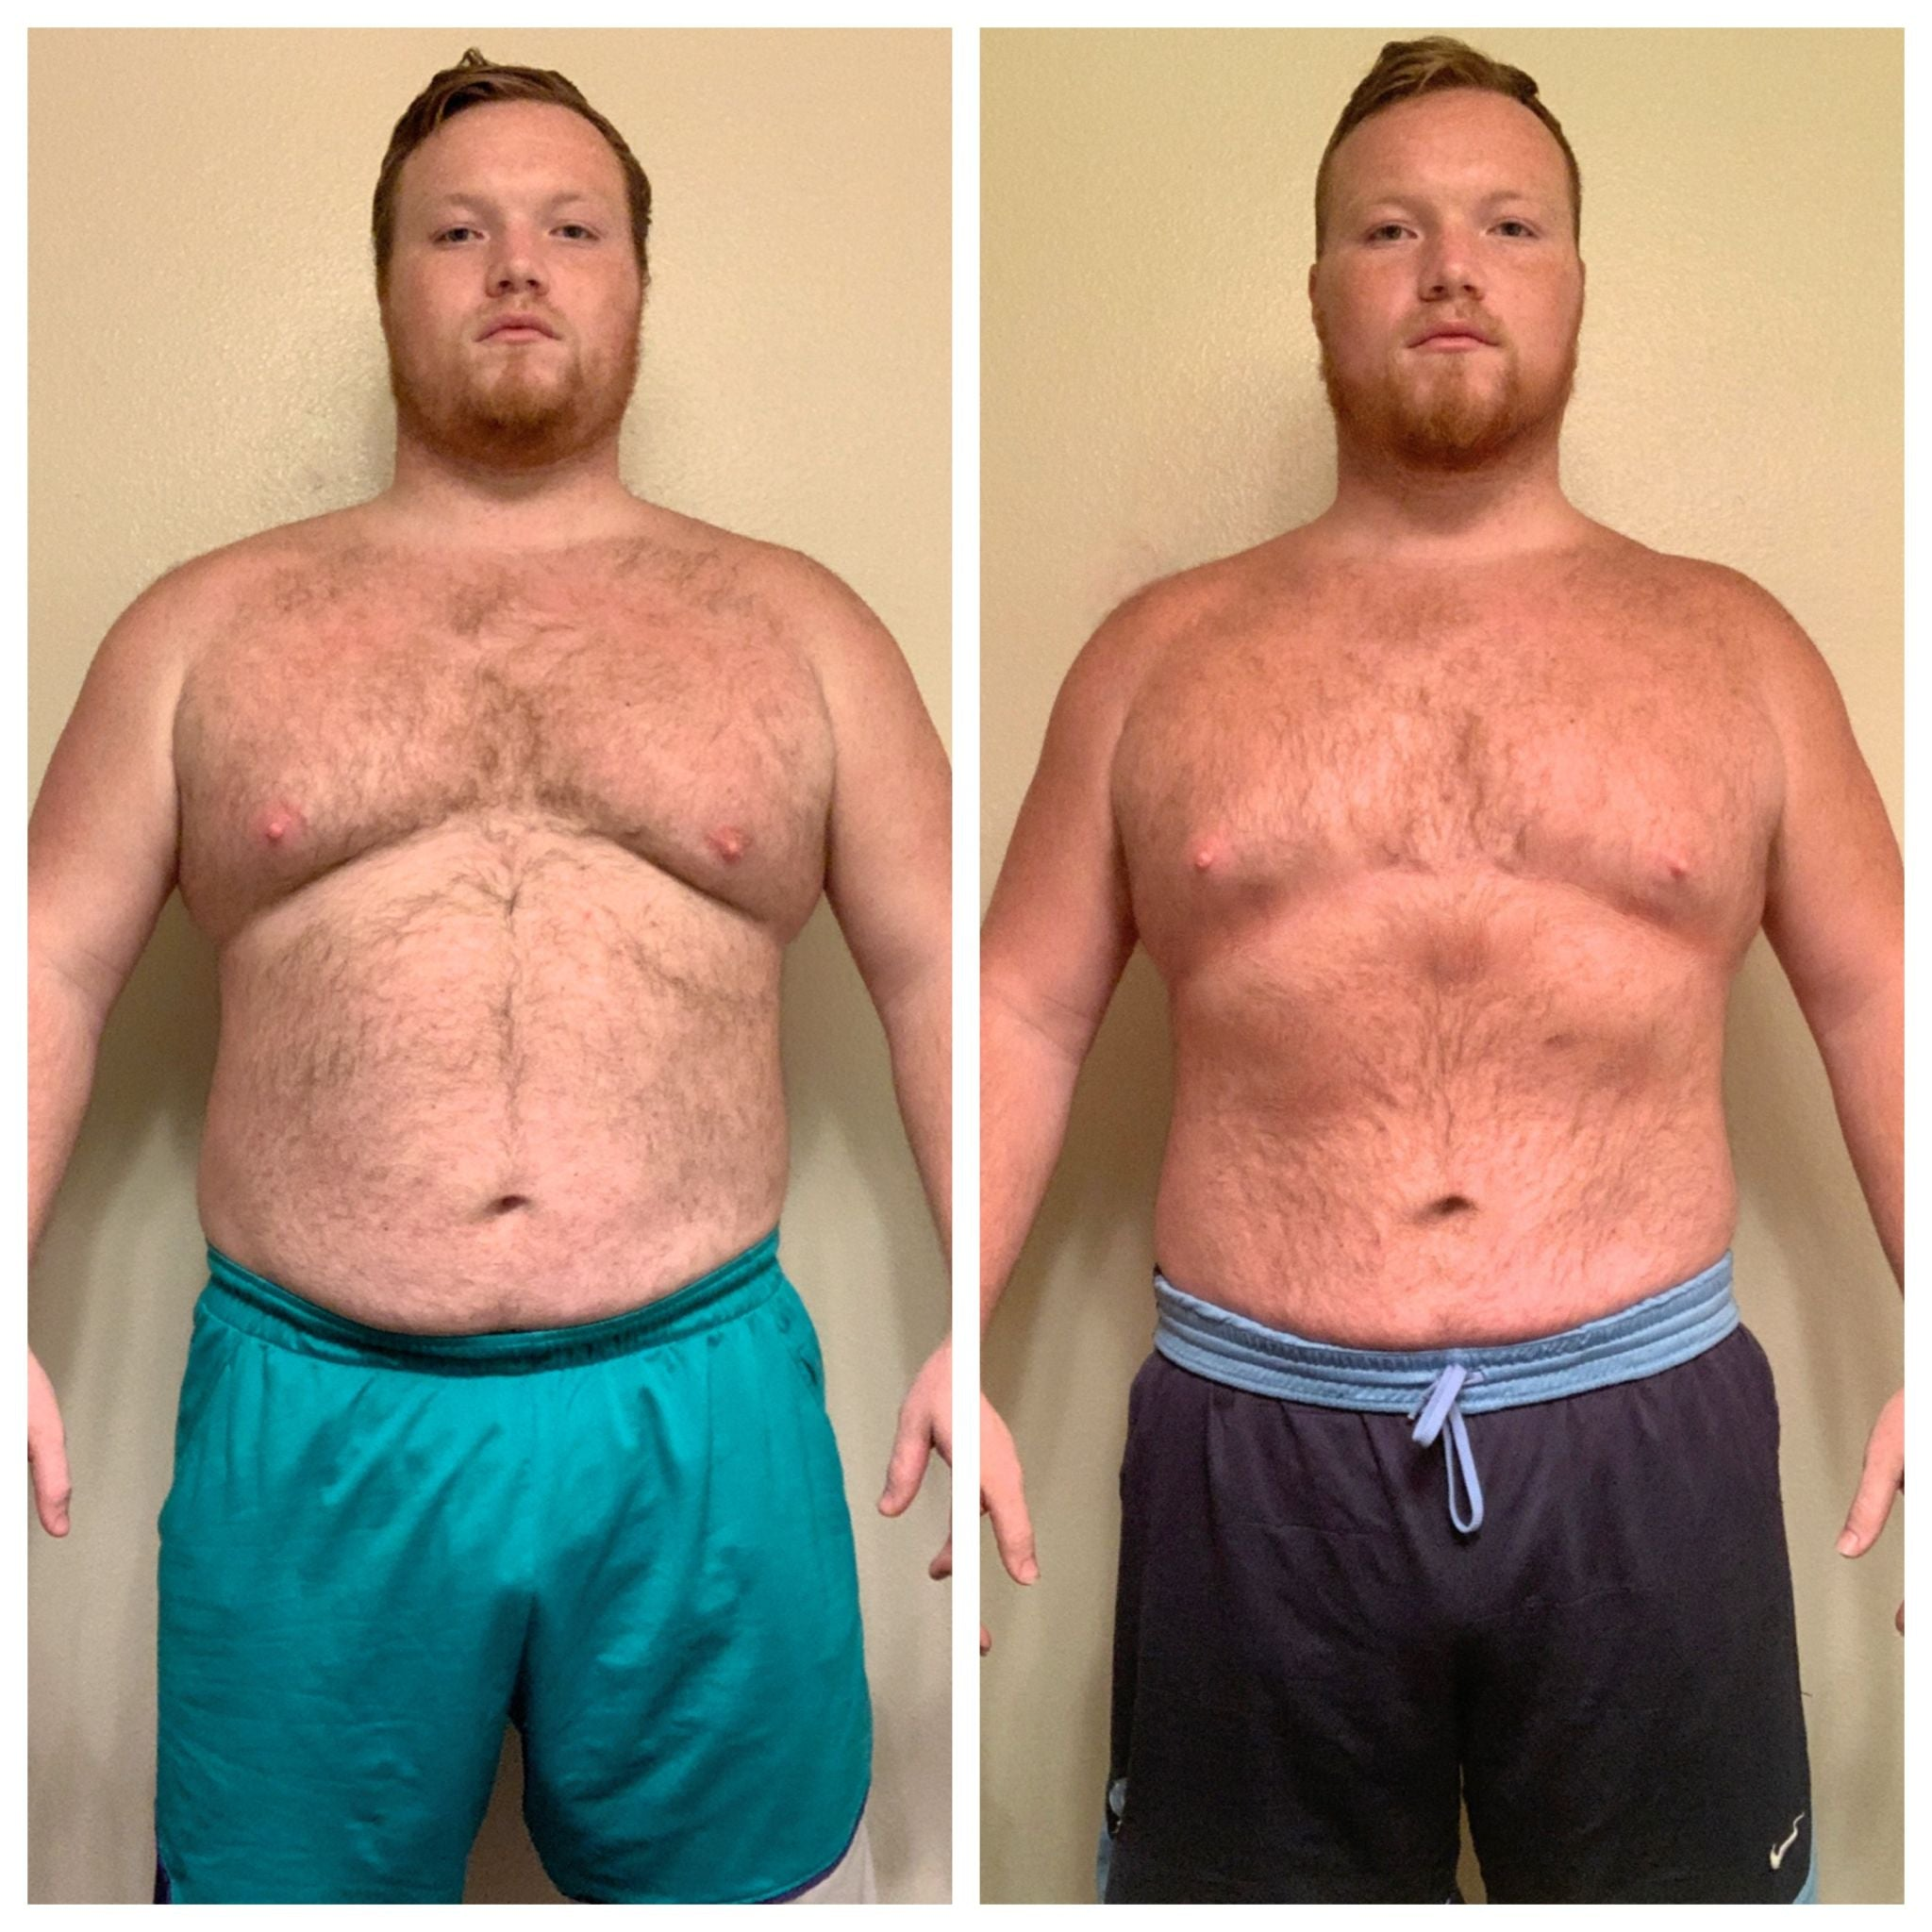 Ryan, before and after